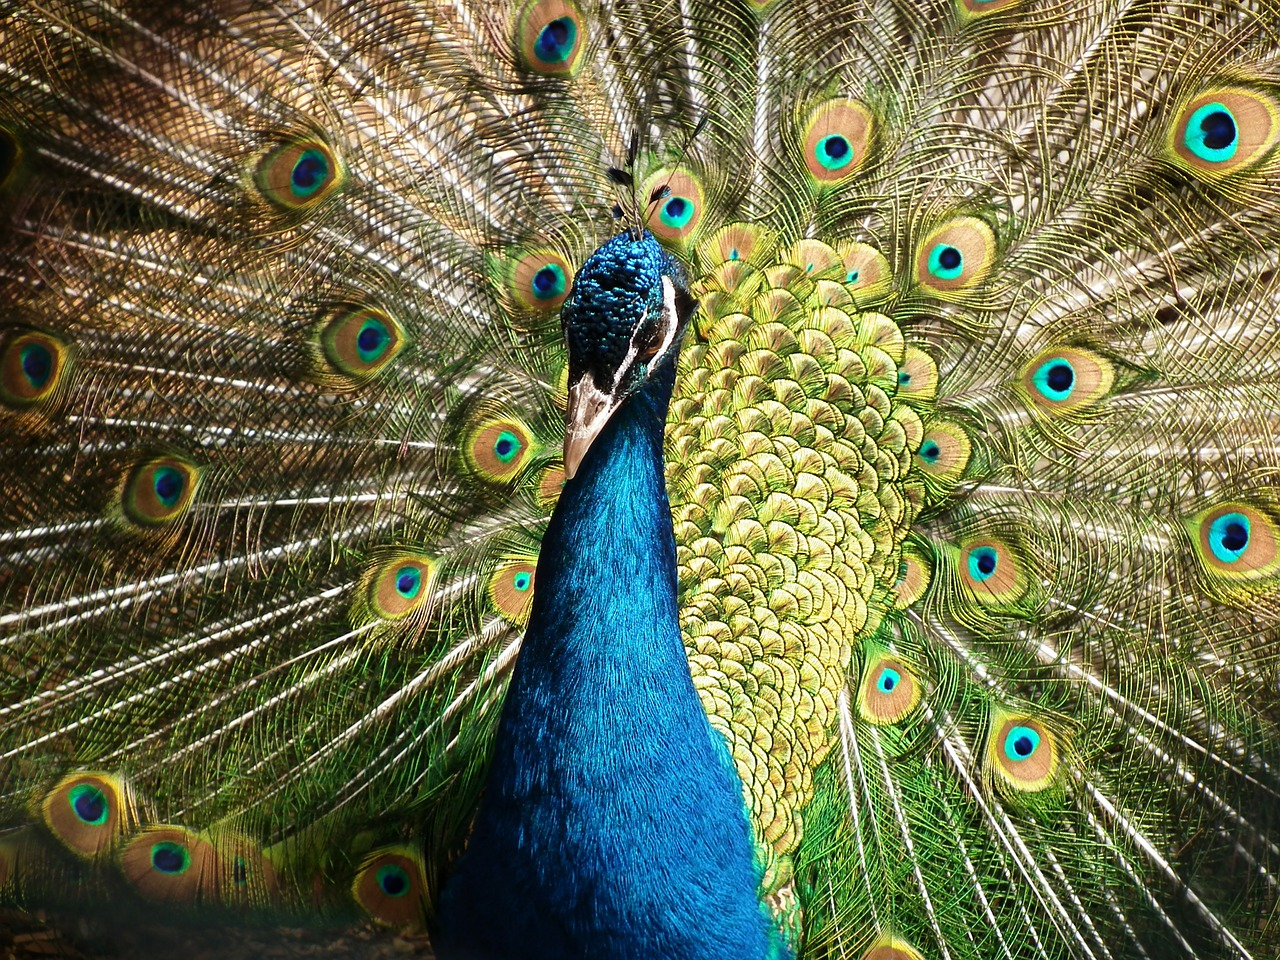 What the peacock can teach us about trust:  An evolutionary moral for politicians